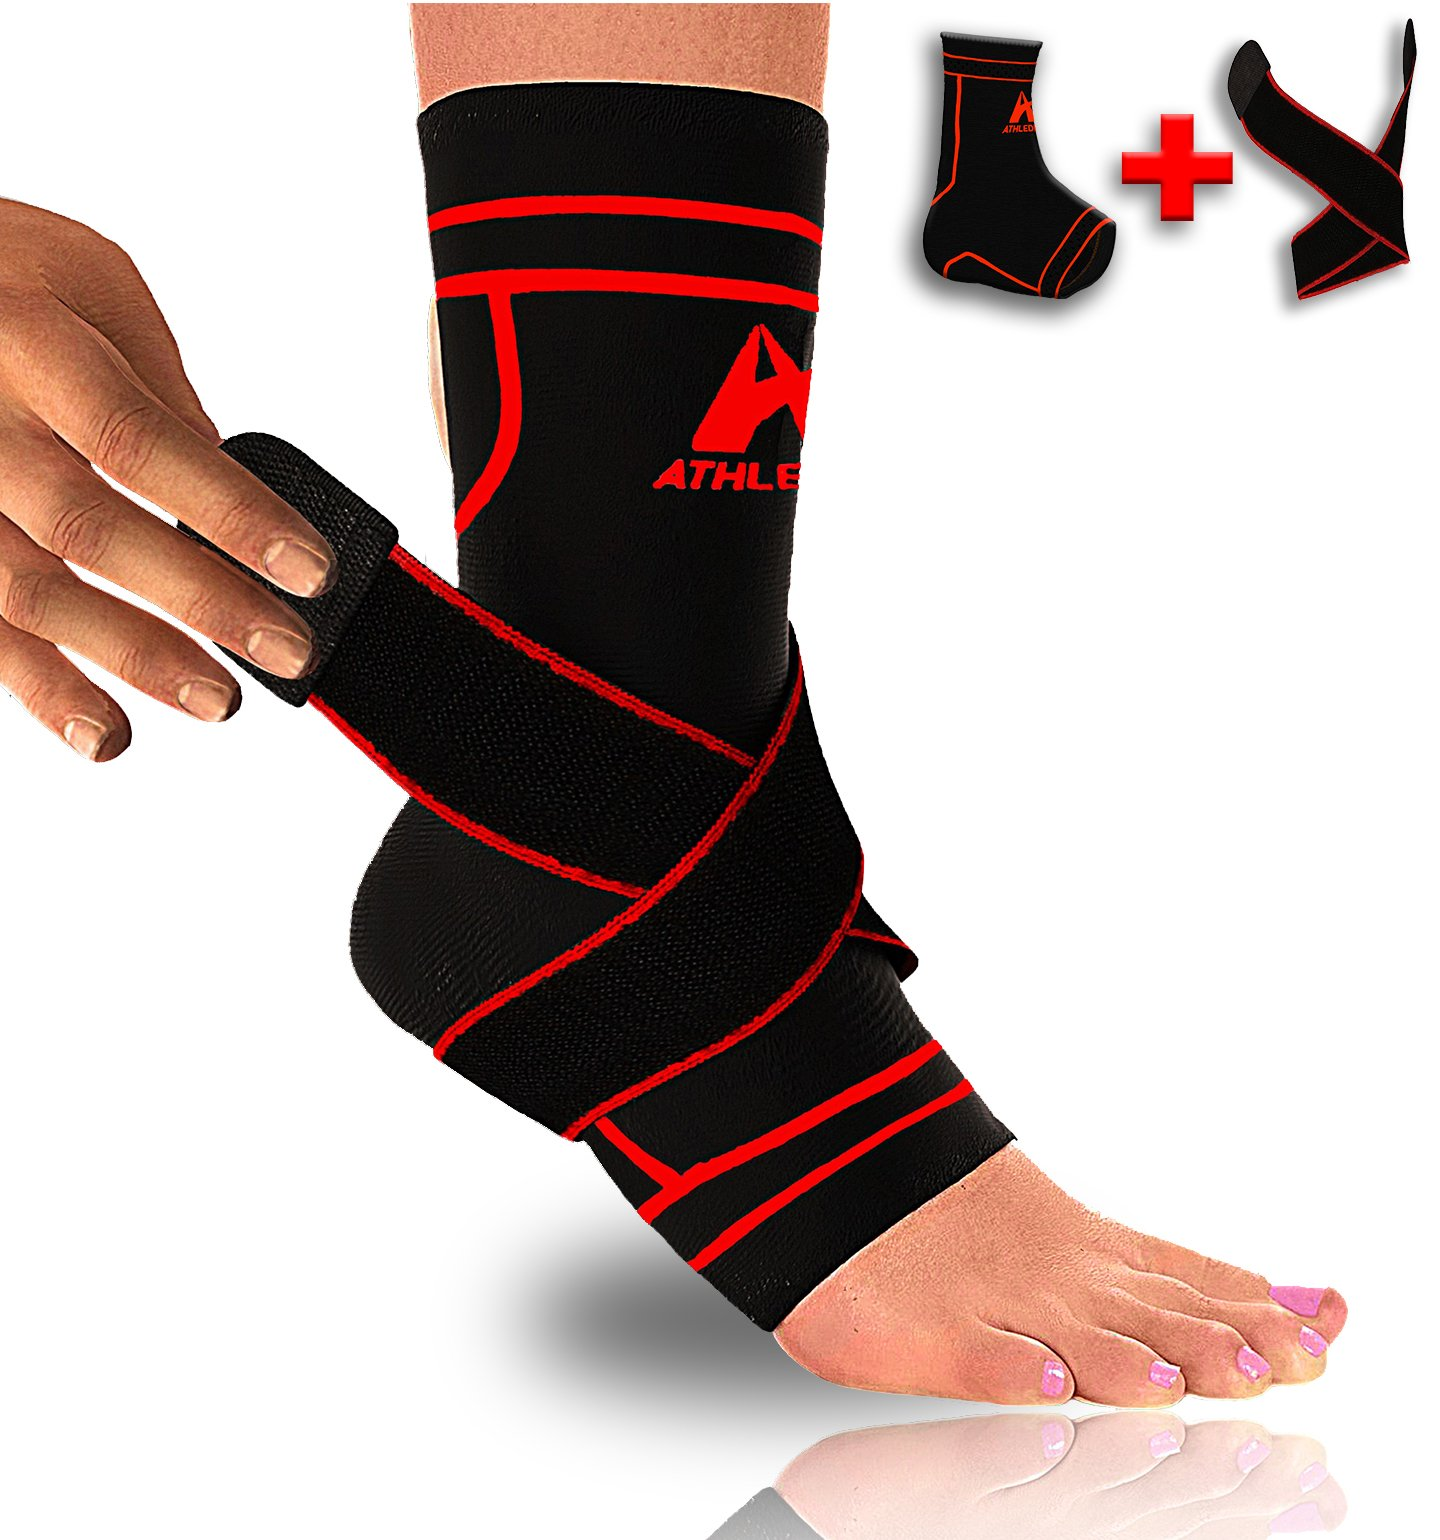 Athledict Plantar Fasciitis Sock Sleeve with Ankle Brace Strap for Support & Pain Relief by trade; (Black/Red, M)